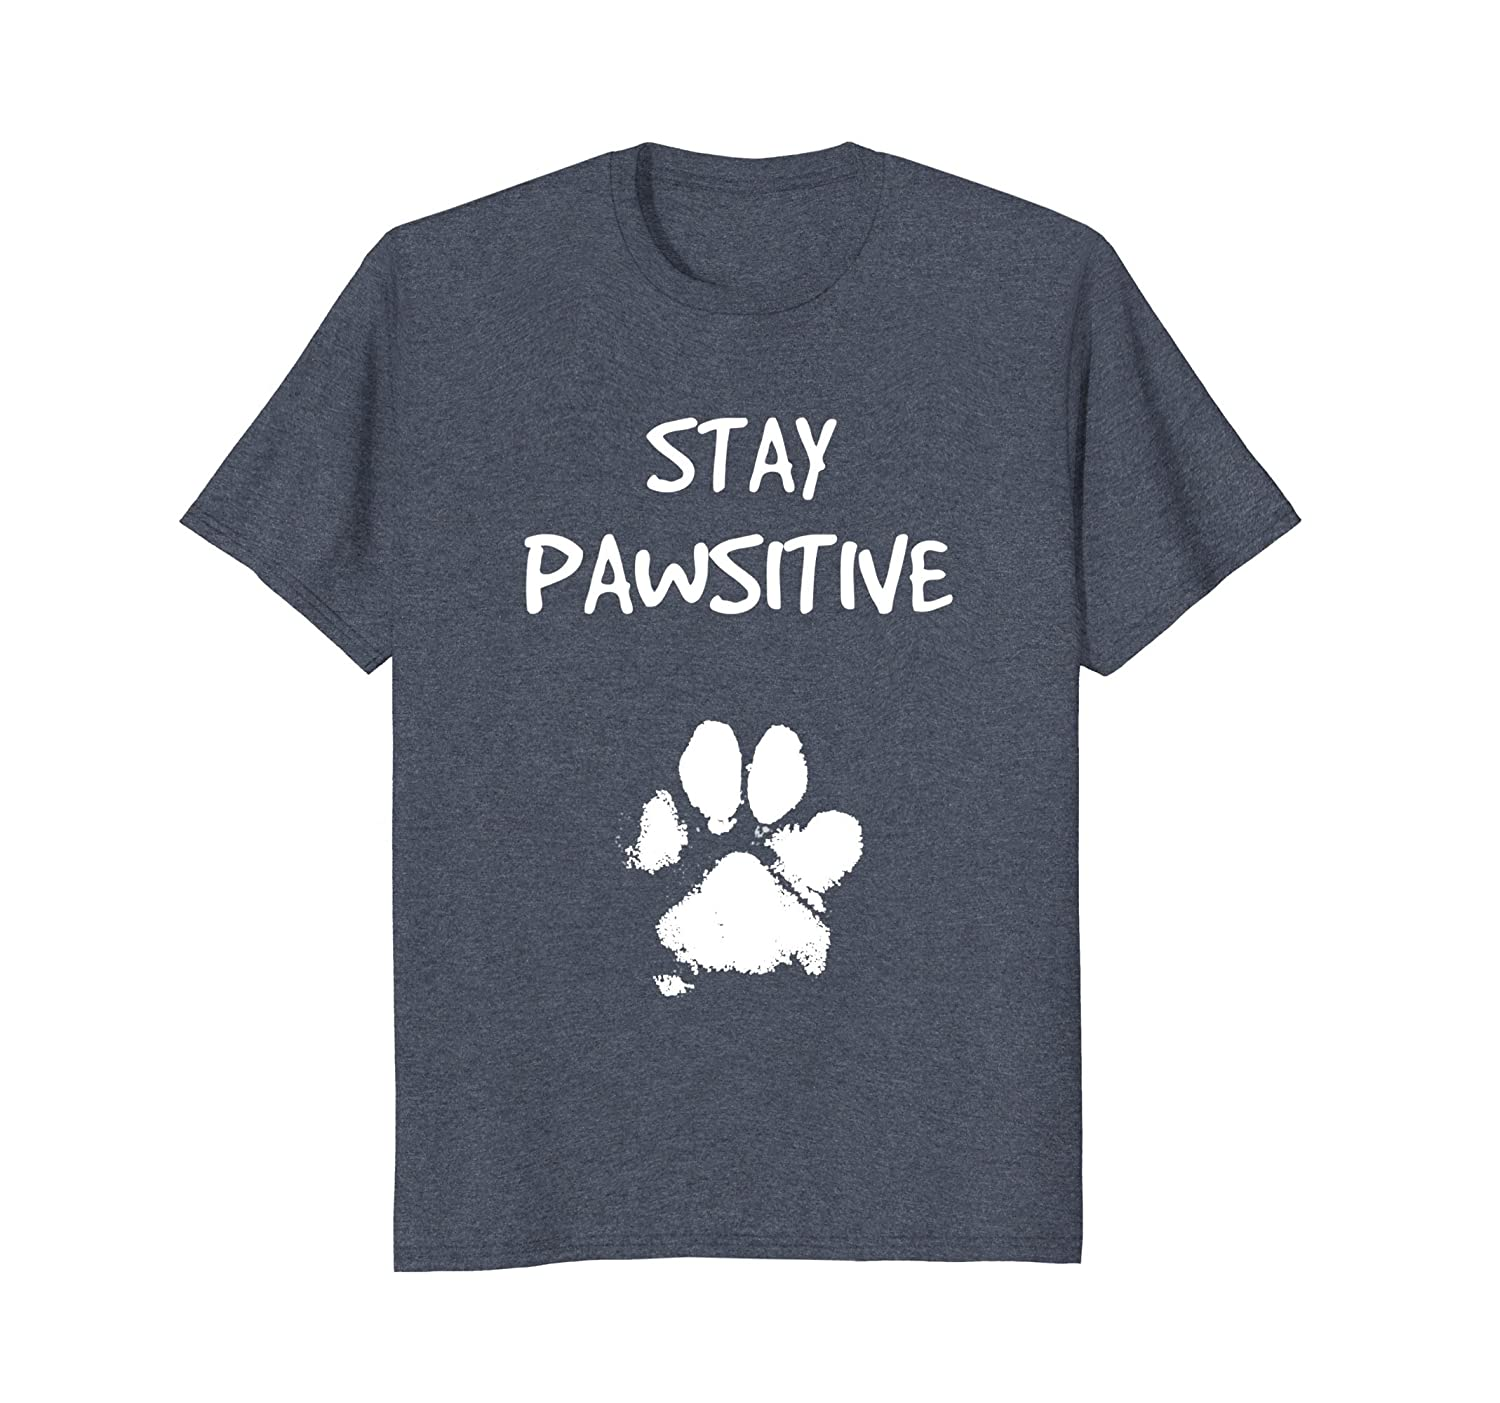 Funny Dog T-Shirt Stay Positive Pun Tee Gifts for Dog Lovers-AZP